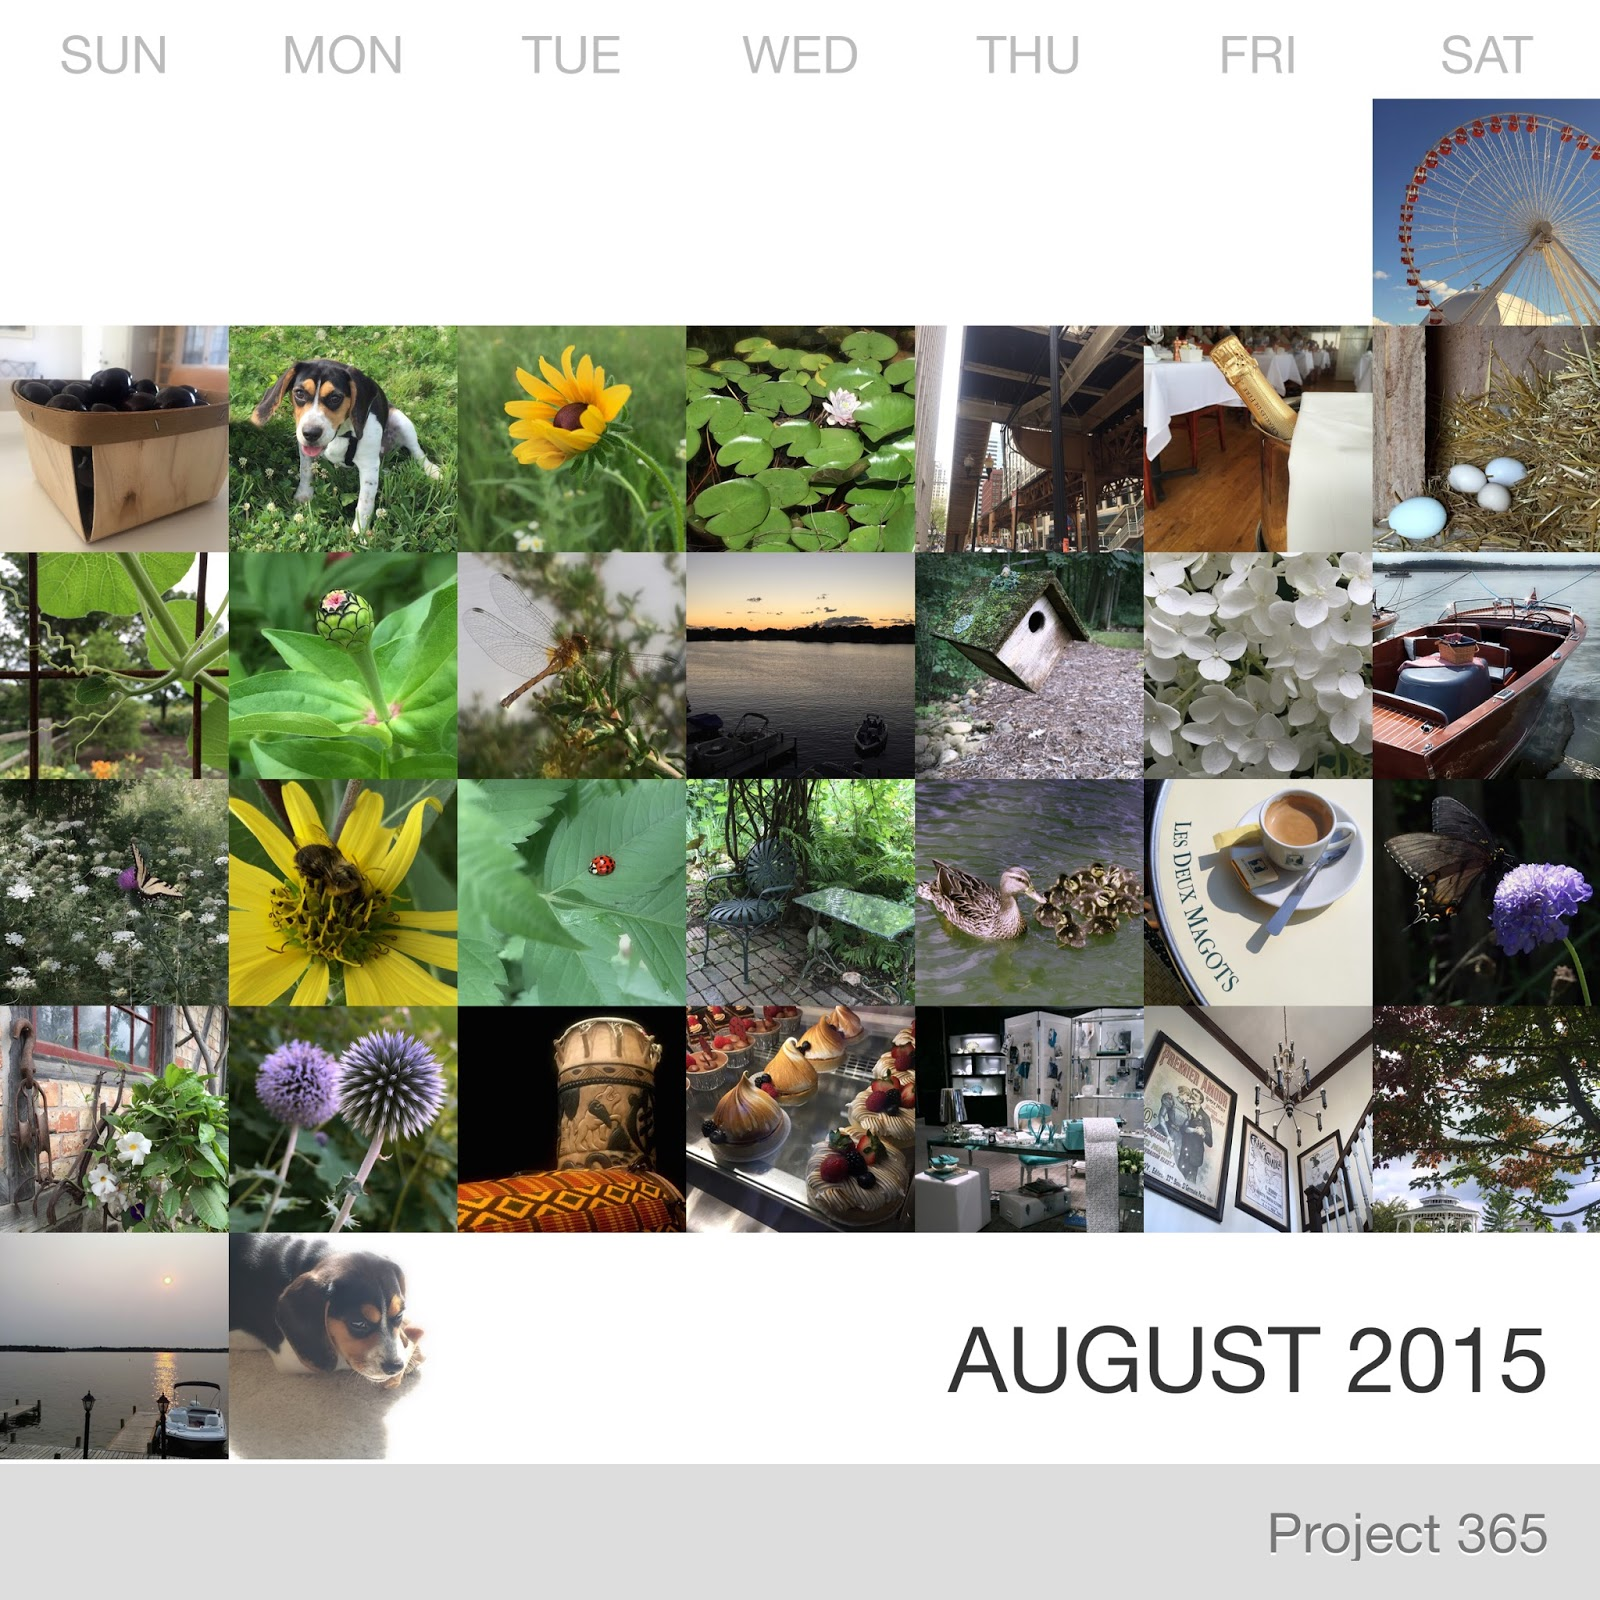 Project 365 _August-2015_Collage.jpg